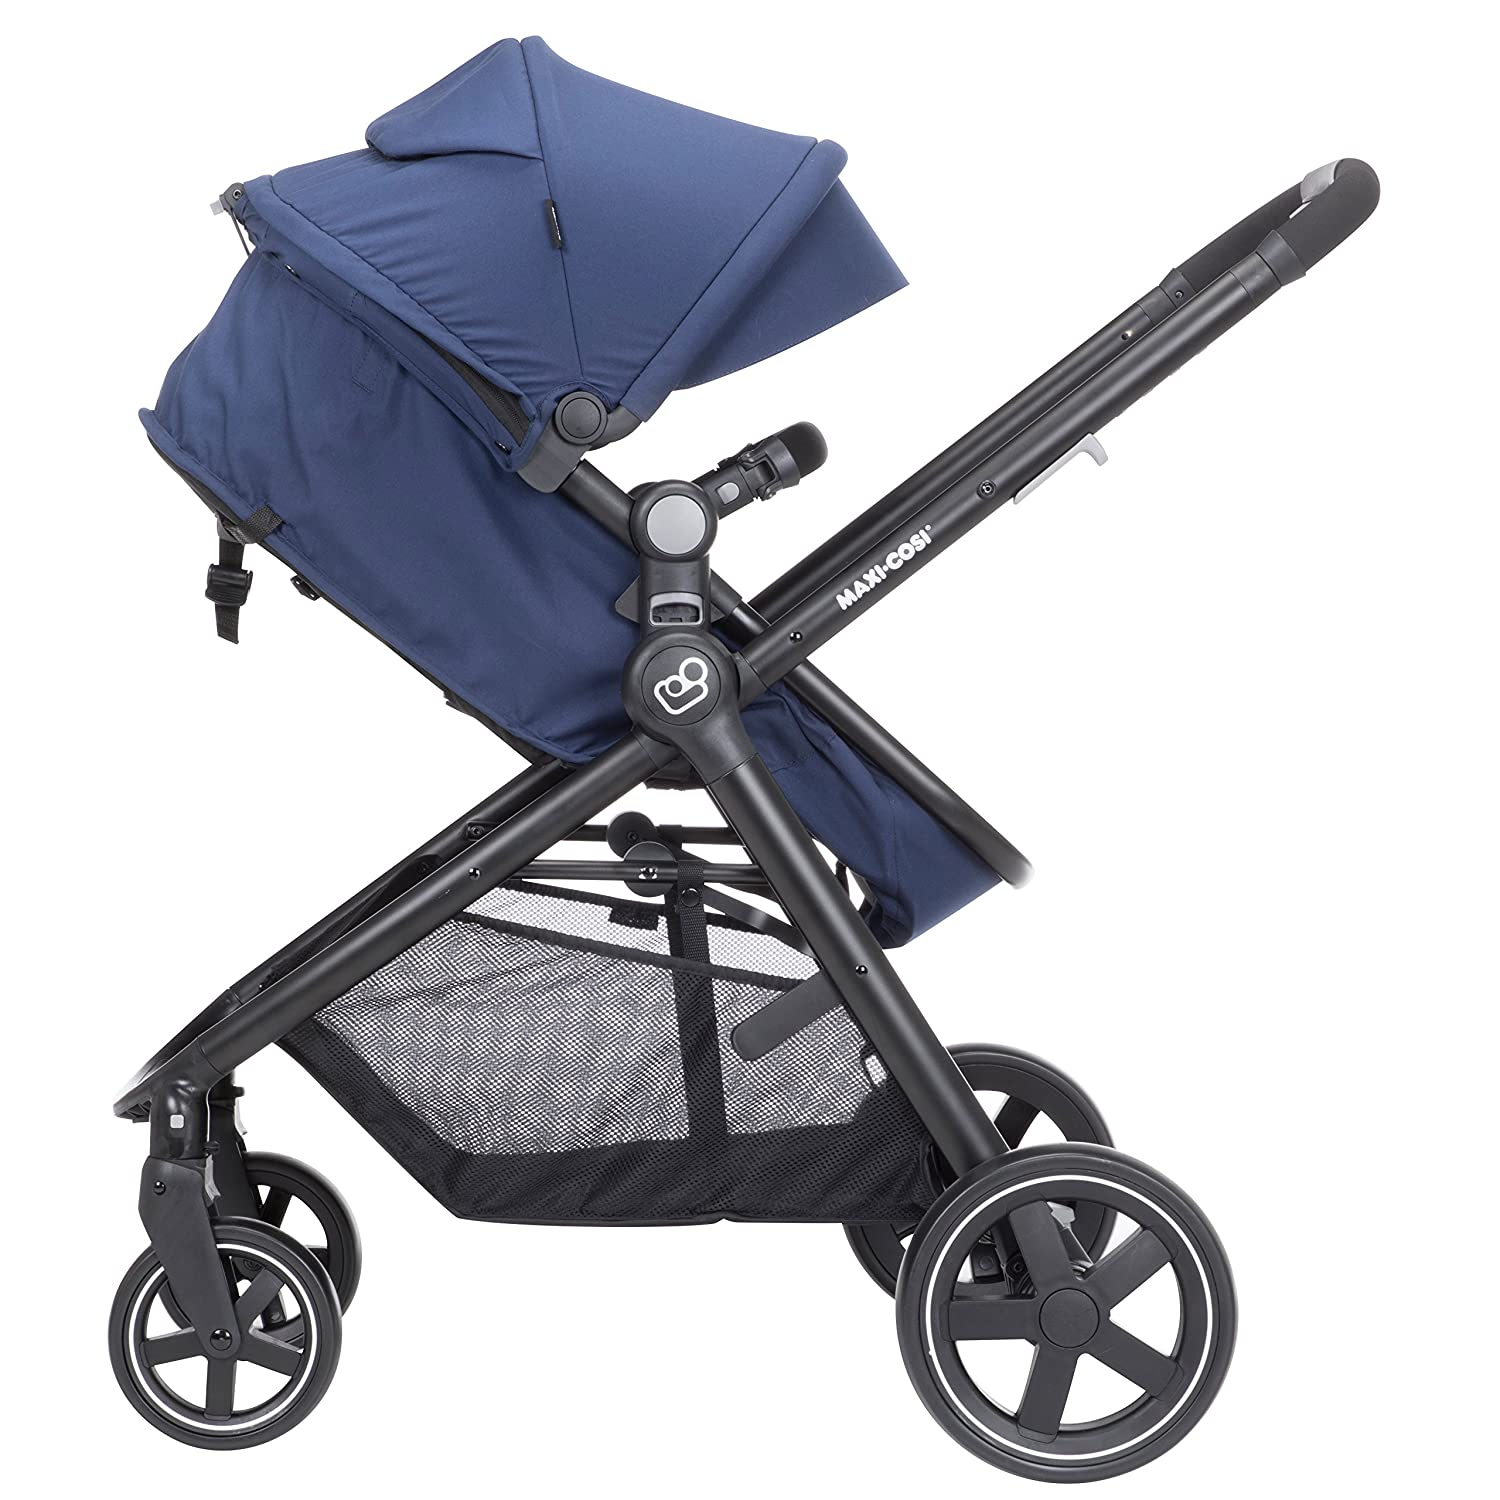 Amazon.com : Maxi-Cosi Zelia 5-in-1 Modular Travel System - Stroller and Mico 30 Infant Car Seat Set, Aventurine Blue : Baby